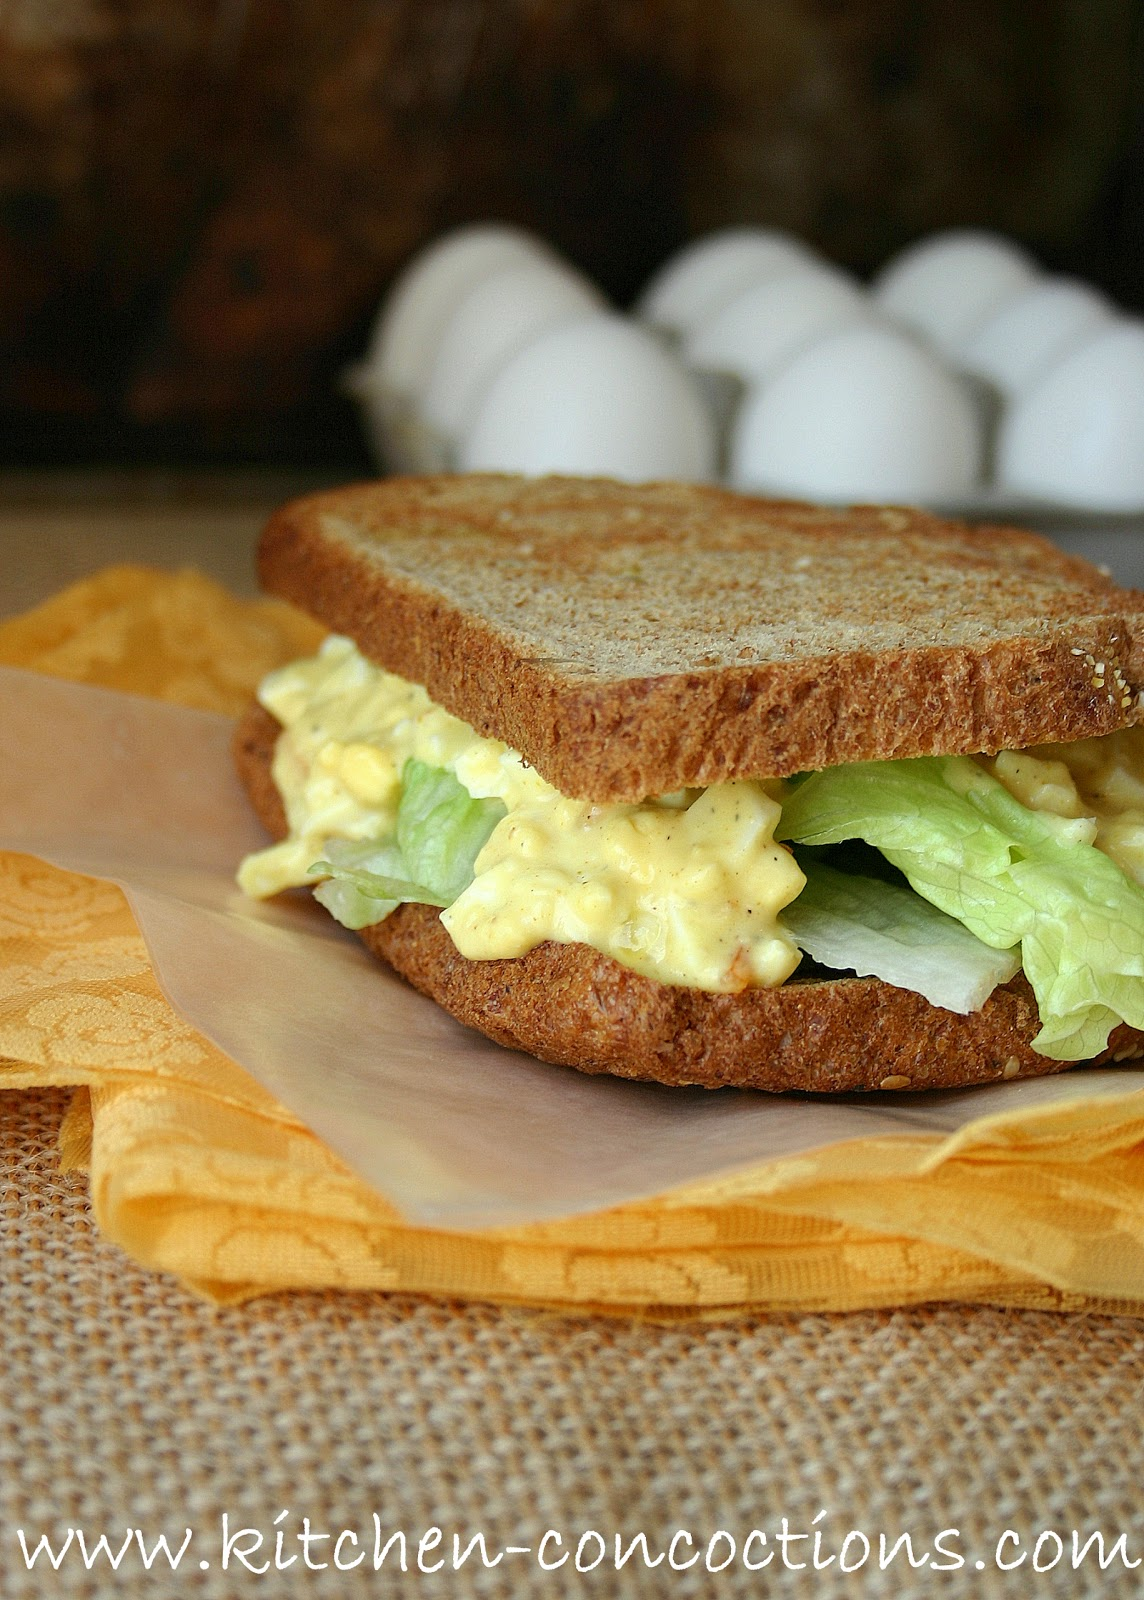 Website Wednesday: Curried Egg Salad - Kitchen Concoctions